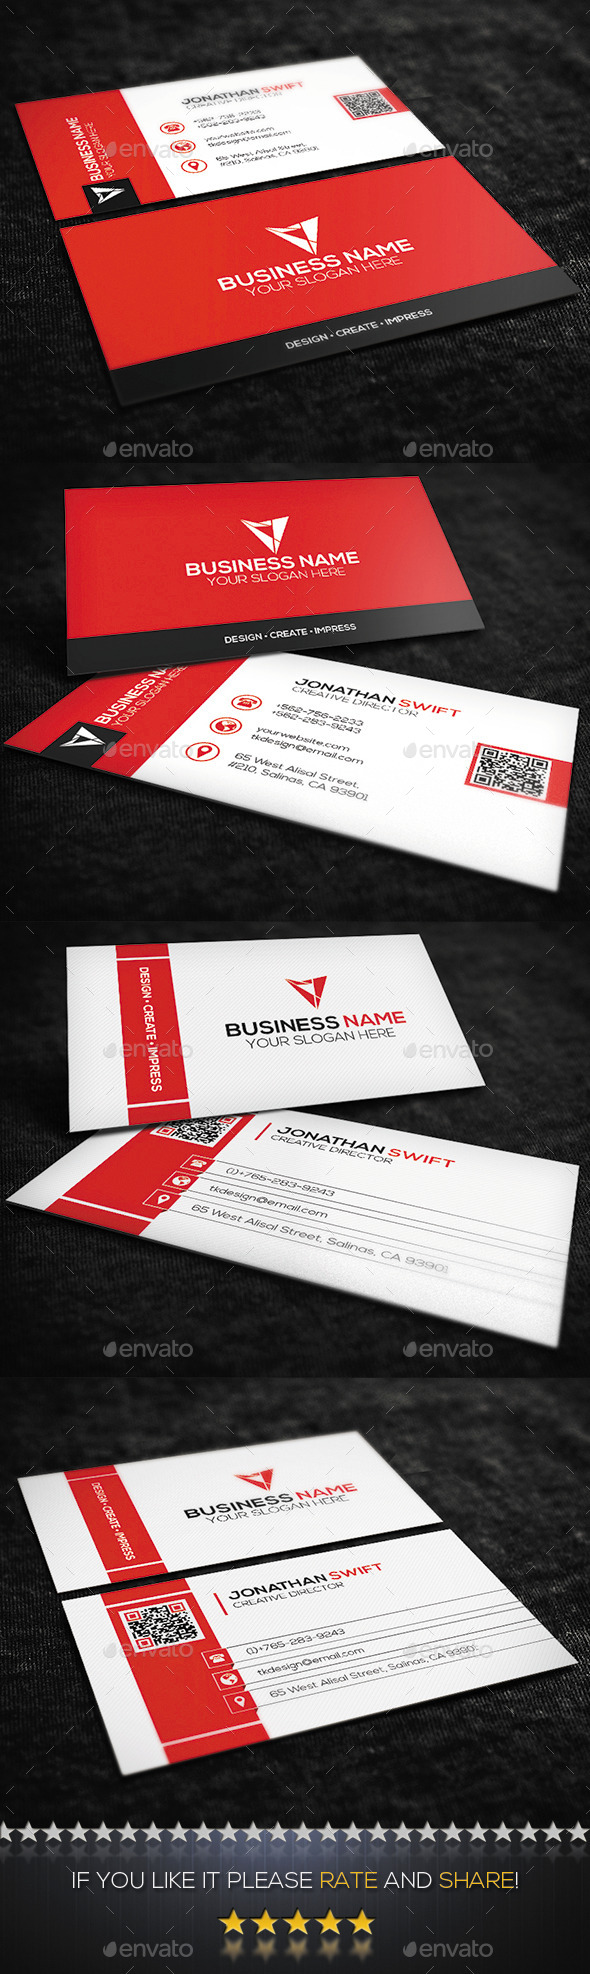 2 in 1 Corporate Business Card Bundle No.02 - Corporate Business Cards